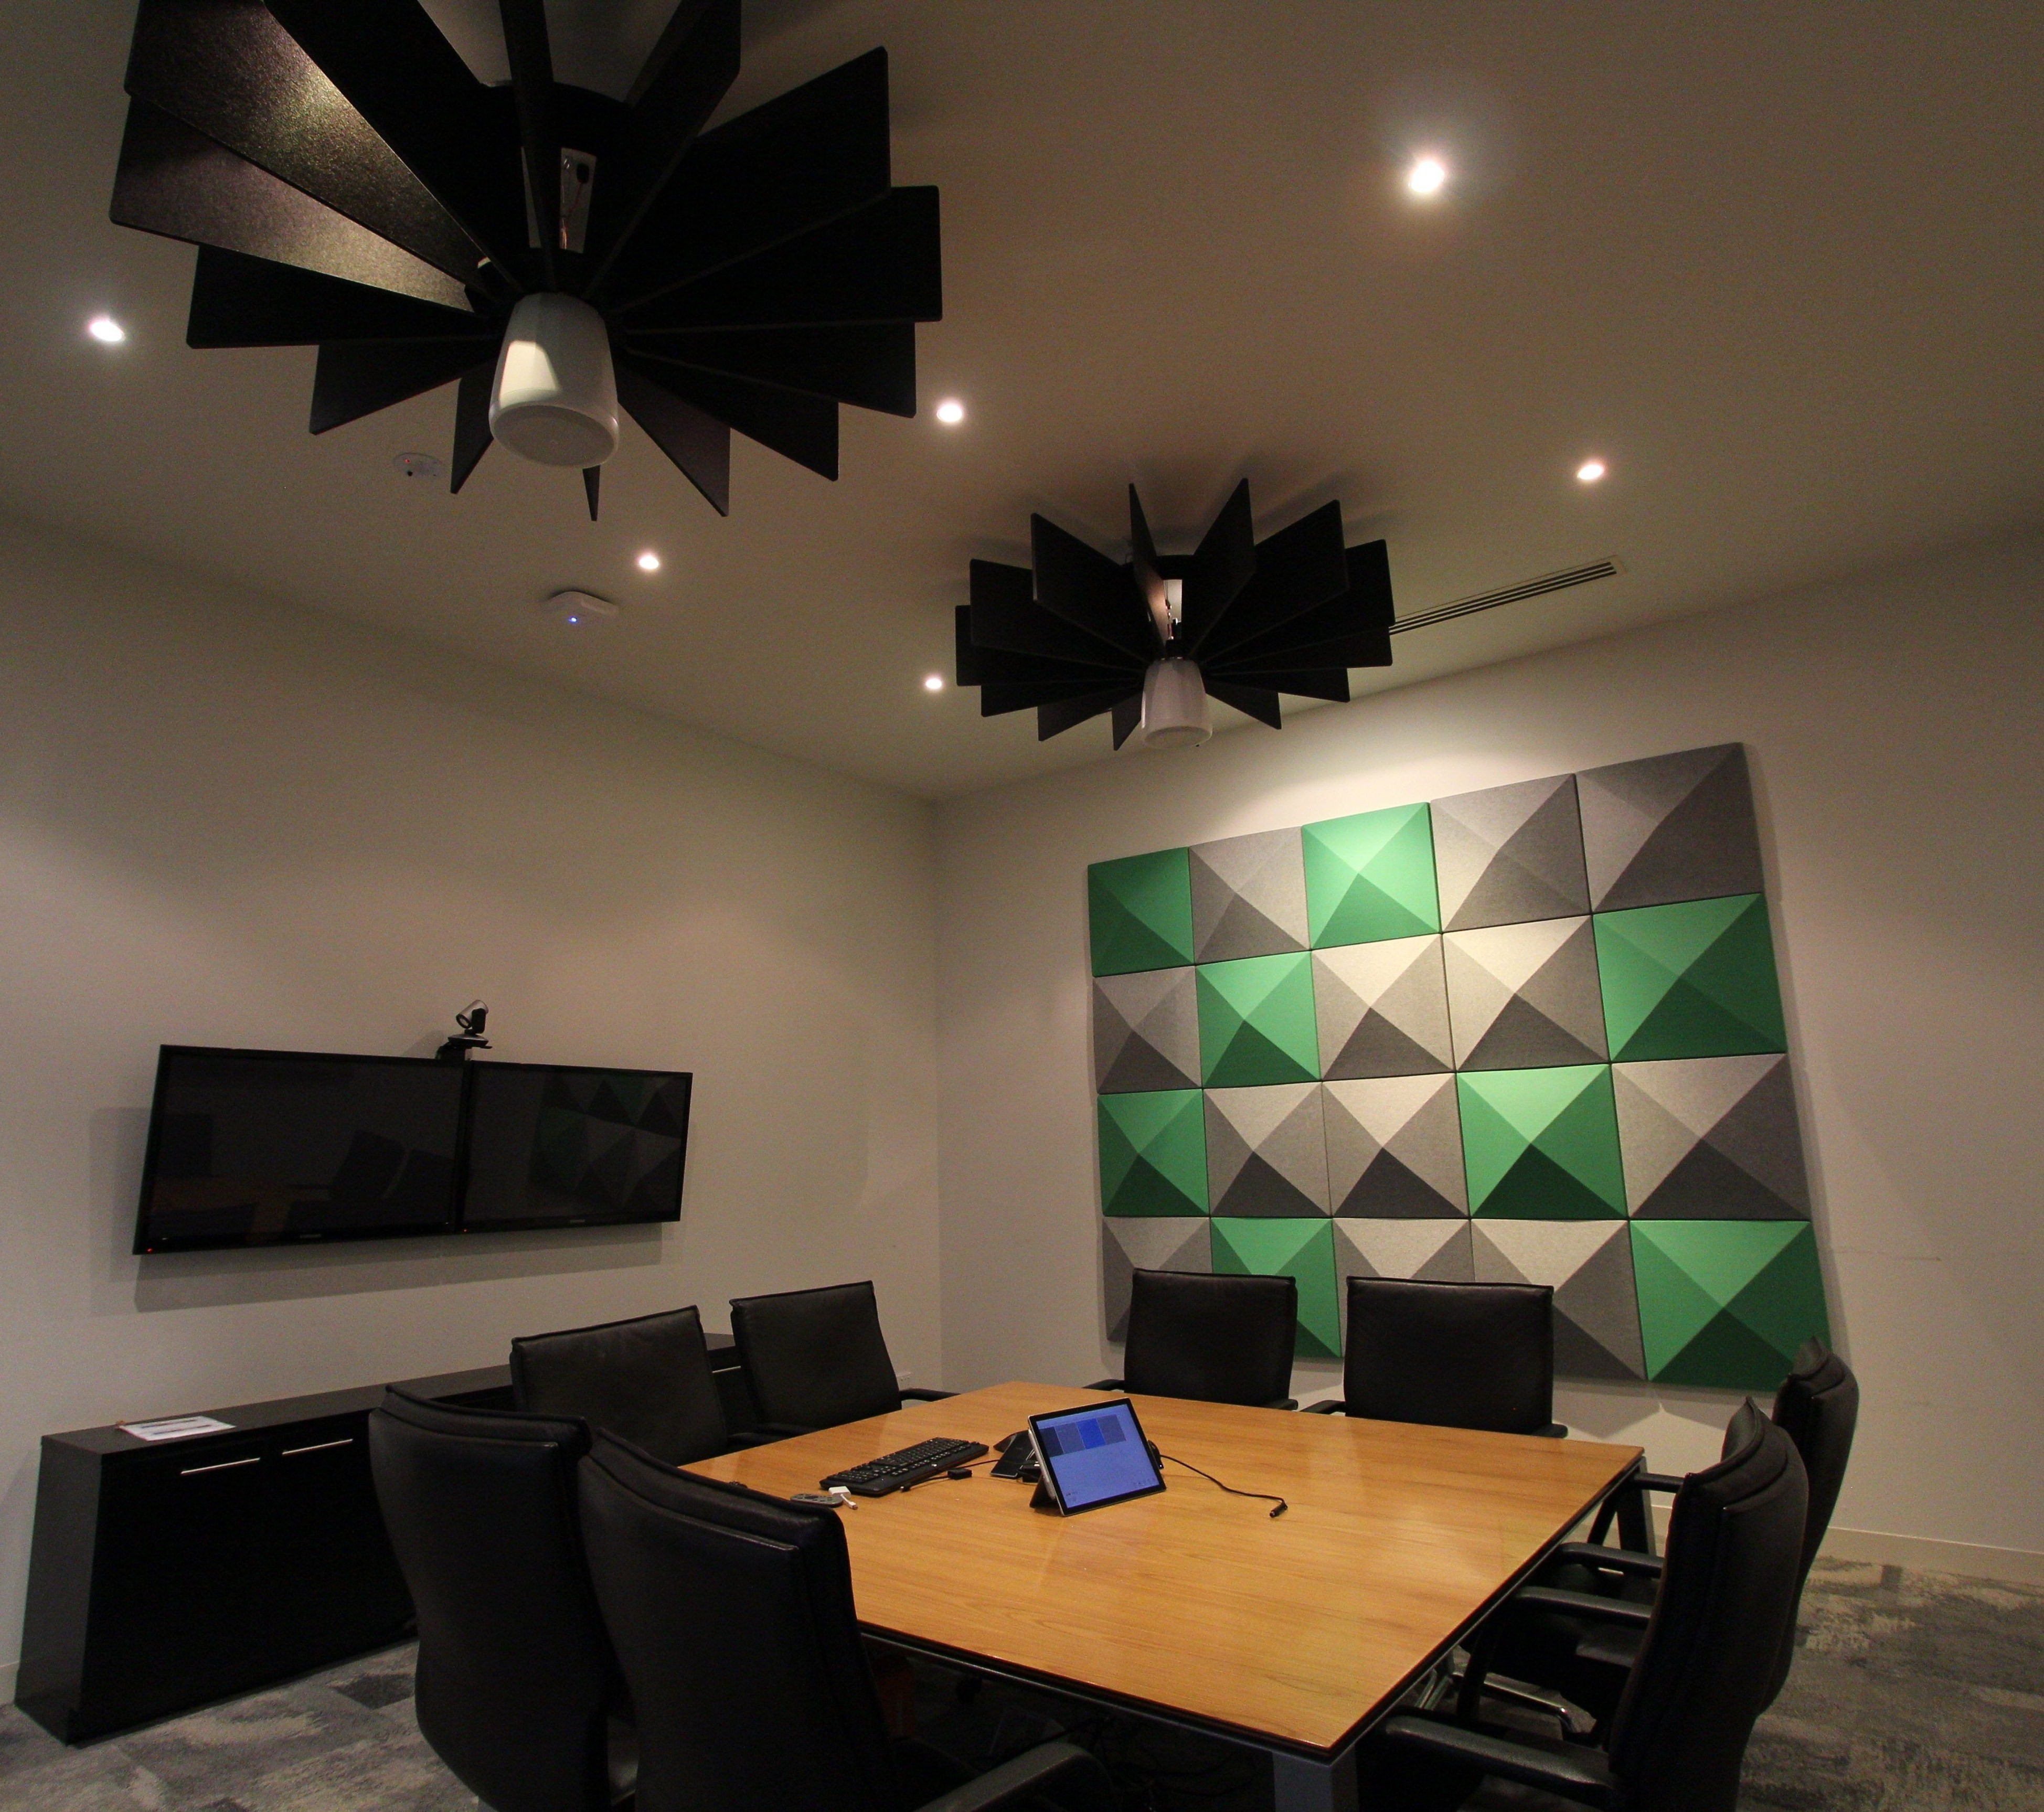 Kathmandu Office - Acoustic Torus Ceiling Lattice and 3D Wall Tiles